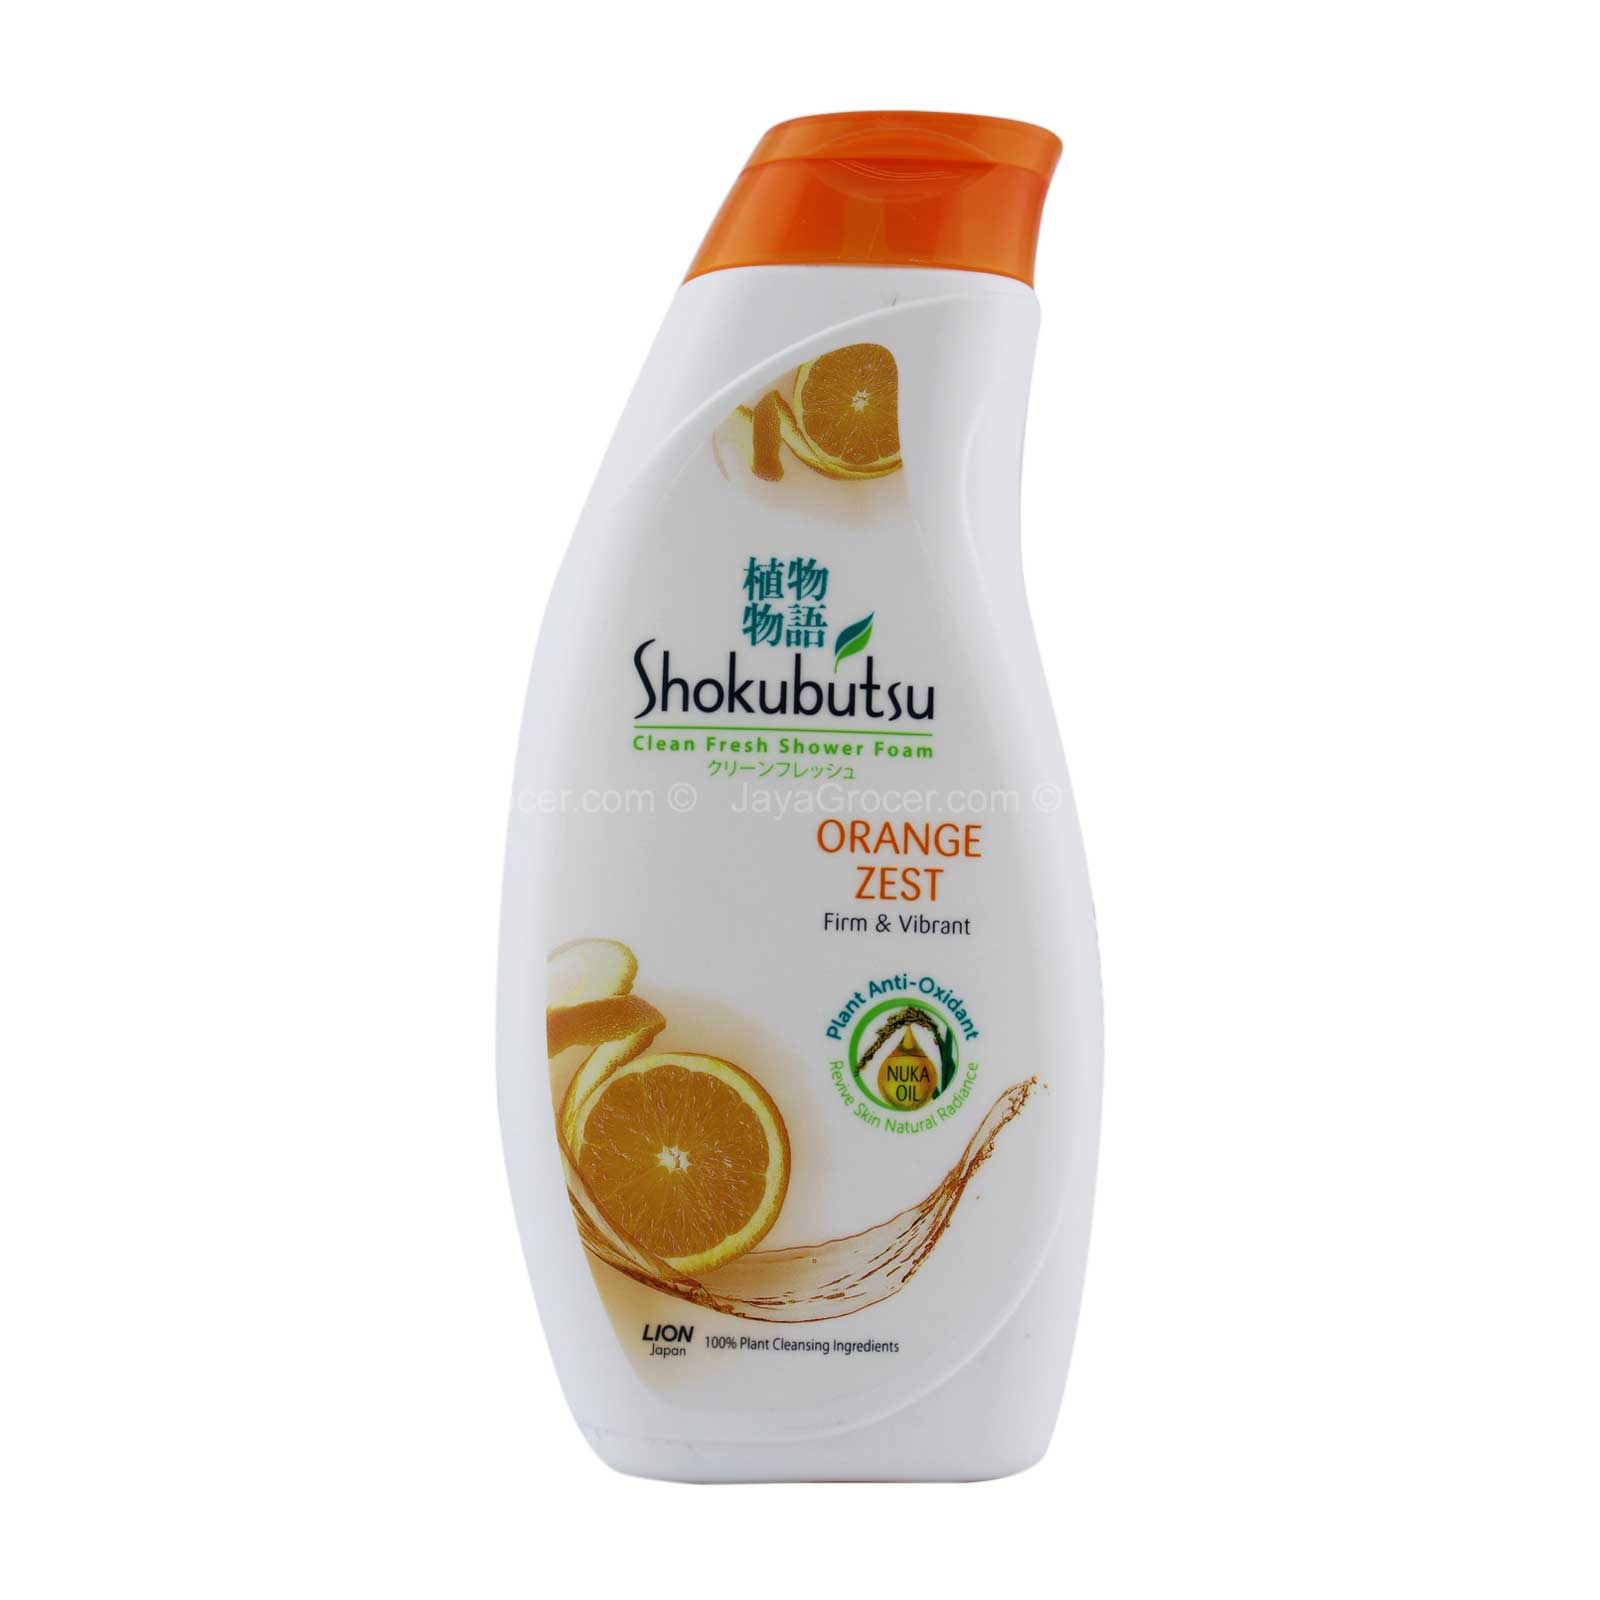 Shokubutsu Body Wash Orange Fest 220g